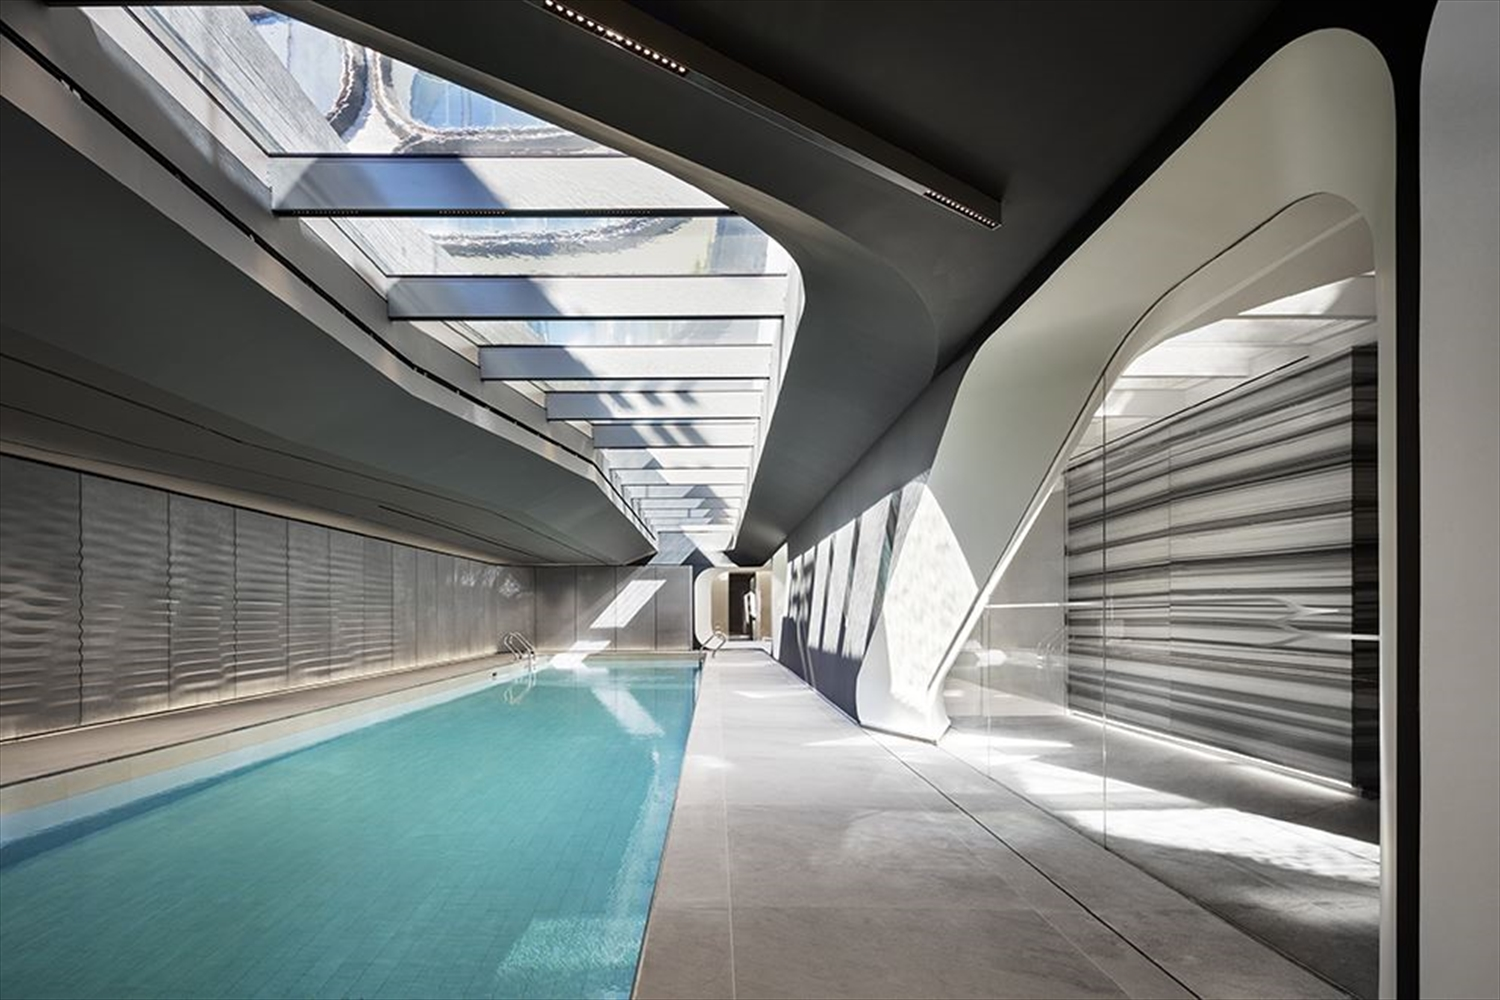 Zaha Hadid Penthouse, 520 West 28th Street, Chelsea, New York | The Swimming Pool |Corcoran | Finest Residences